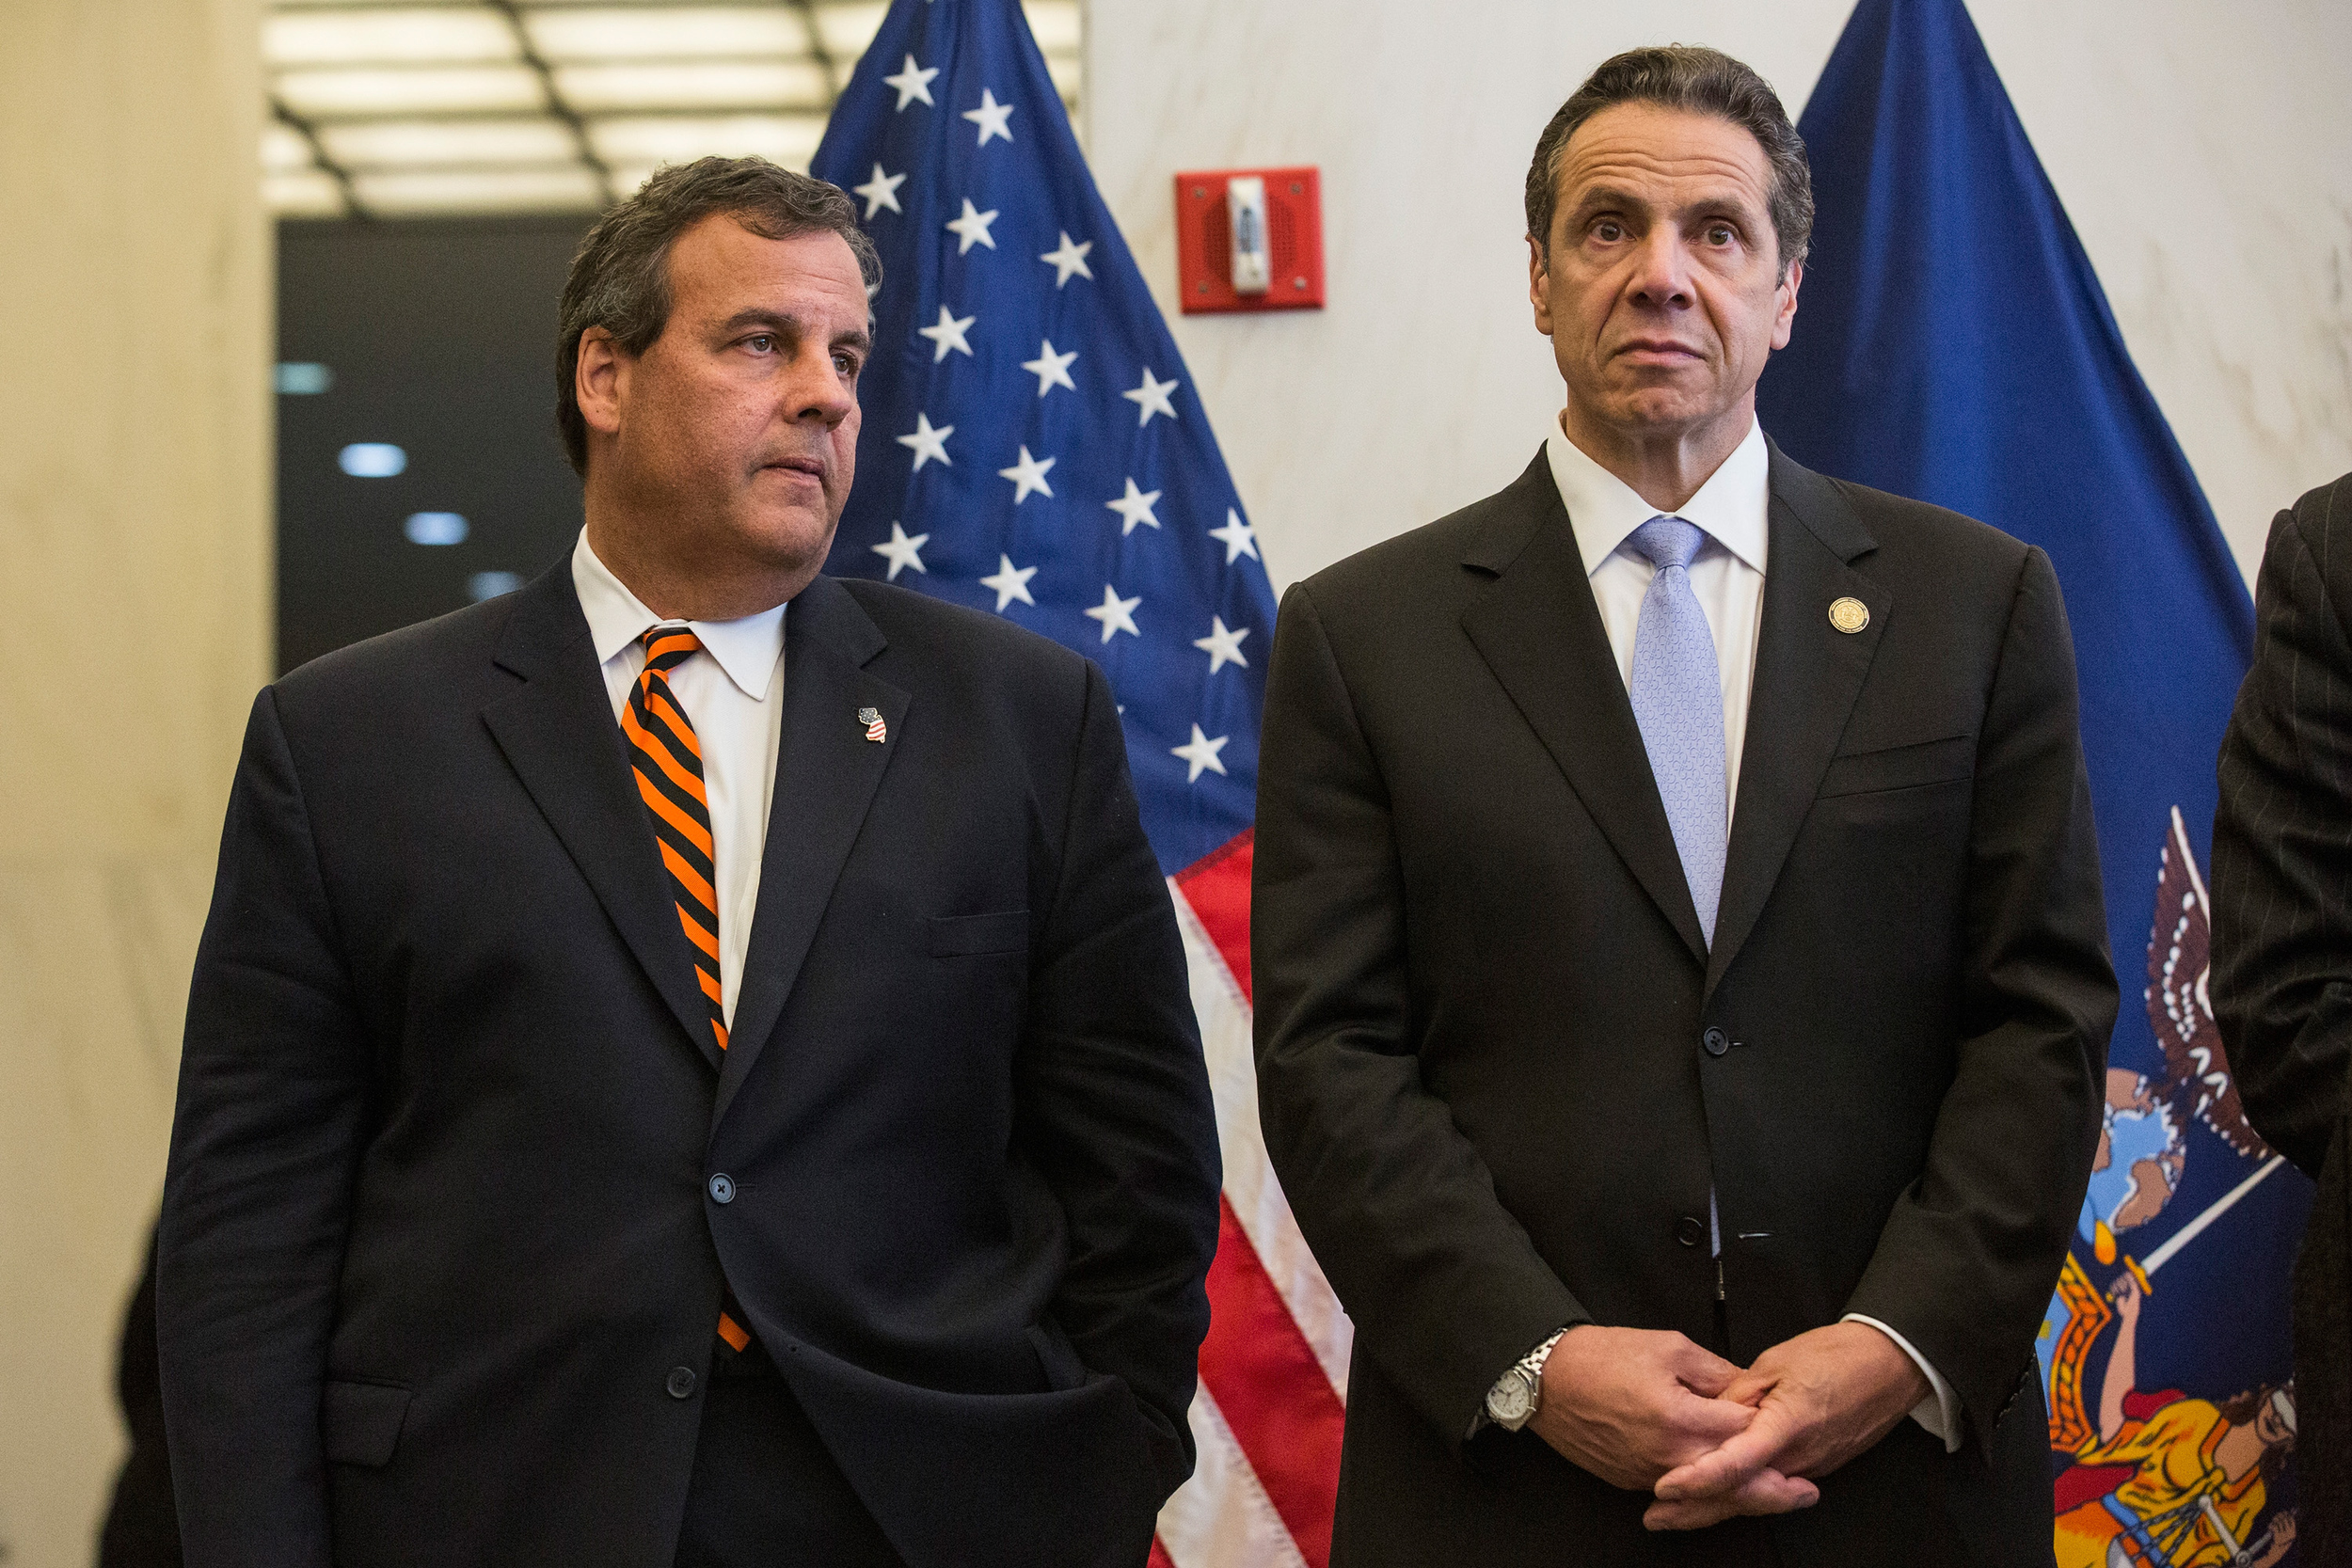 GOVERNORS CHRISTIE AND CUOMO ORDERED A BLANKET QUARANTINE LAST WEEK, THEN QUICKLY SOFTENED THEIR STANCE.